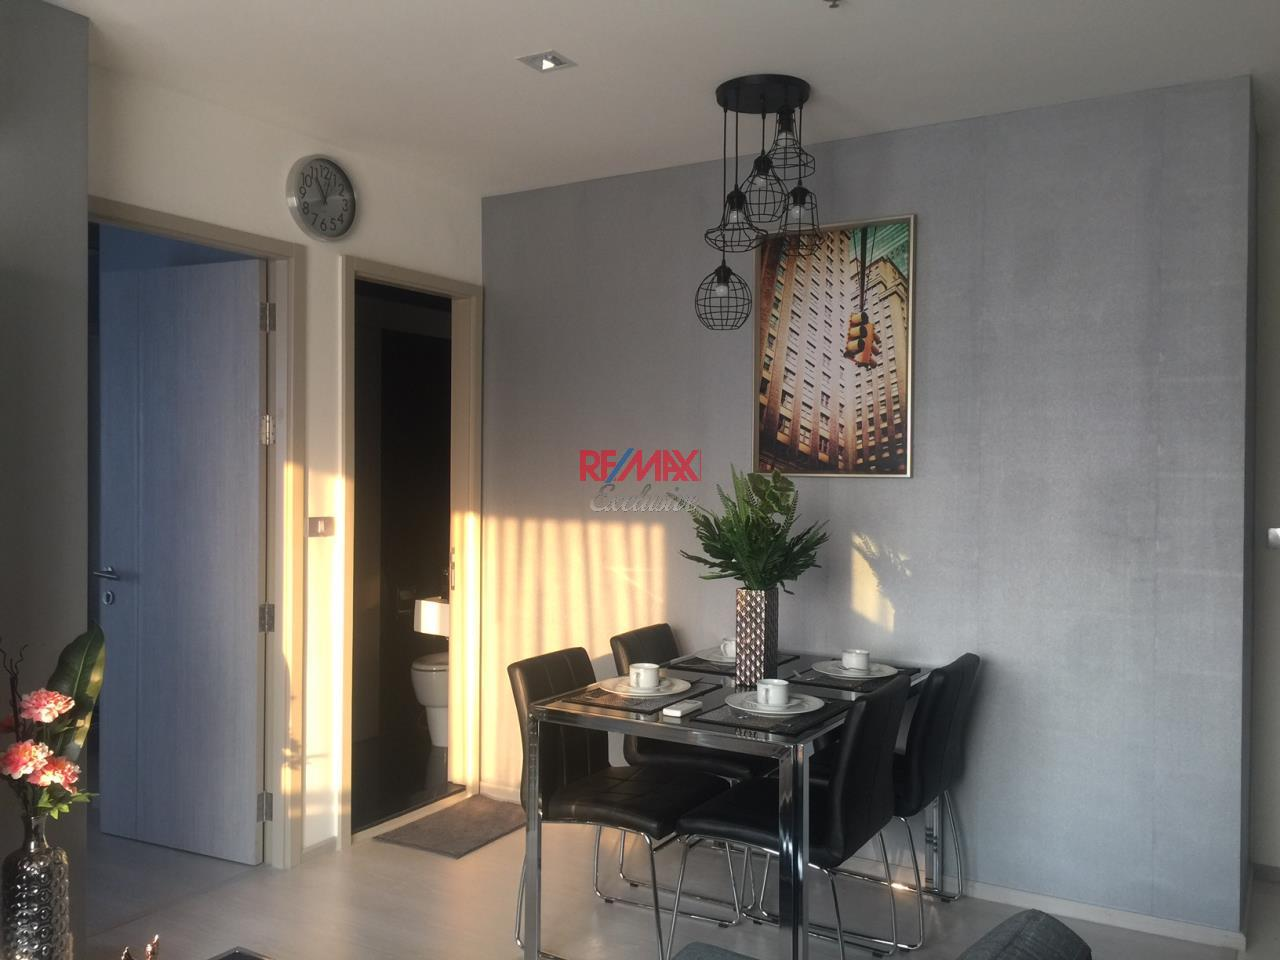 RE/MAX Exclusive Agency's Rhythm Sukhumvit 36-38 1 Bedroom, 42 Sqm., For Rent 35,000 THB!! 3